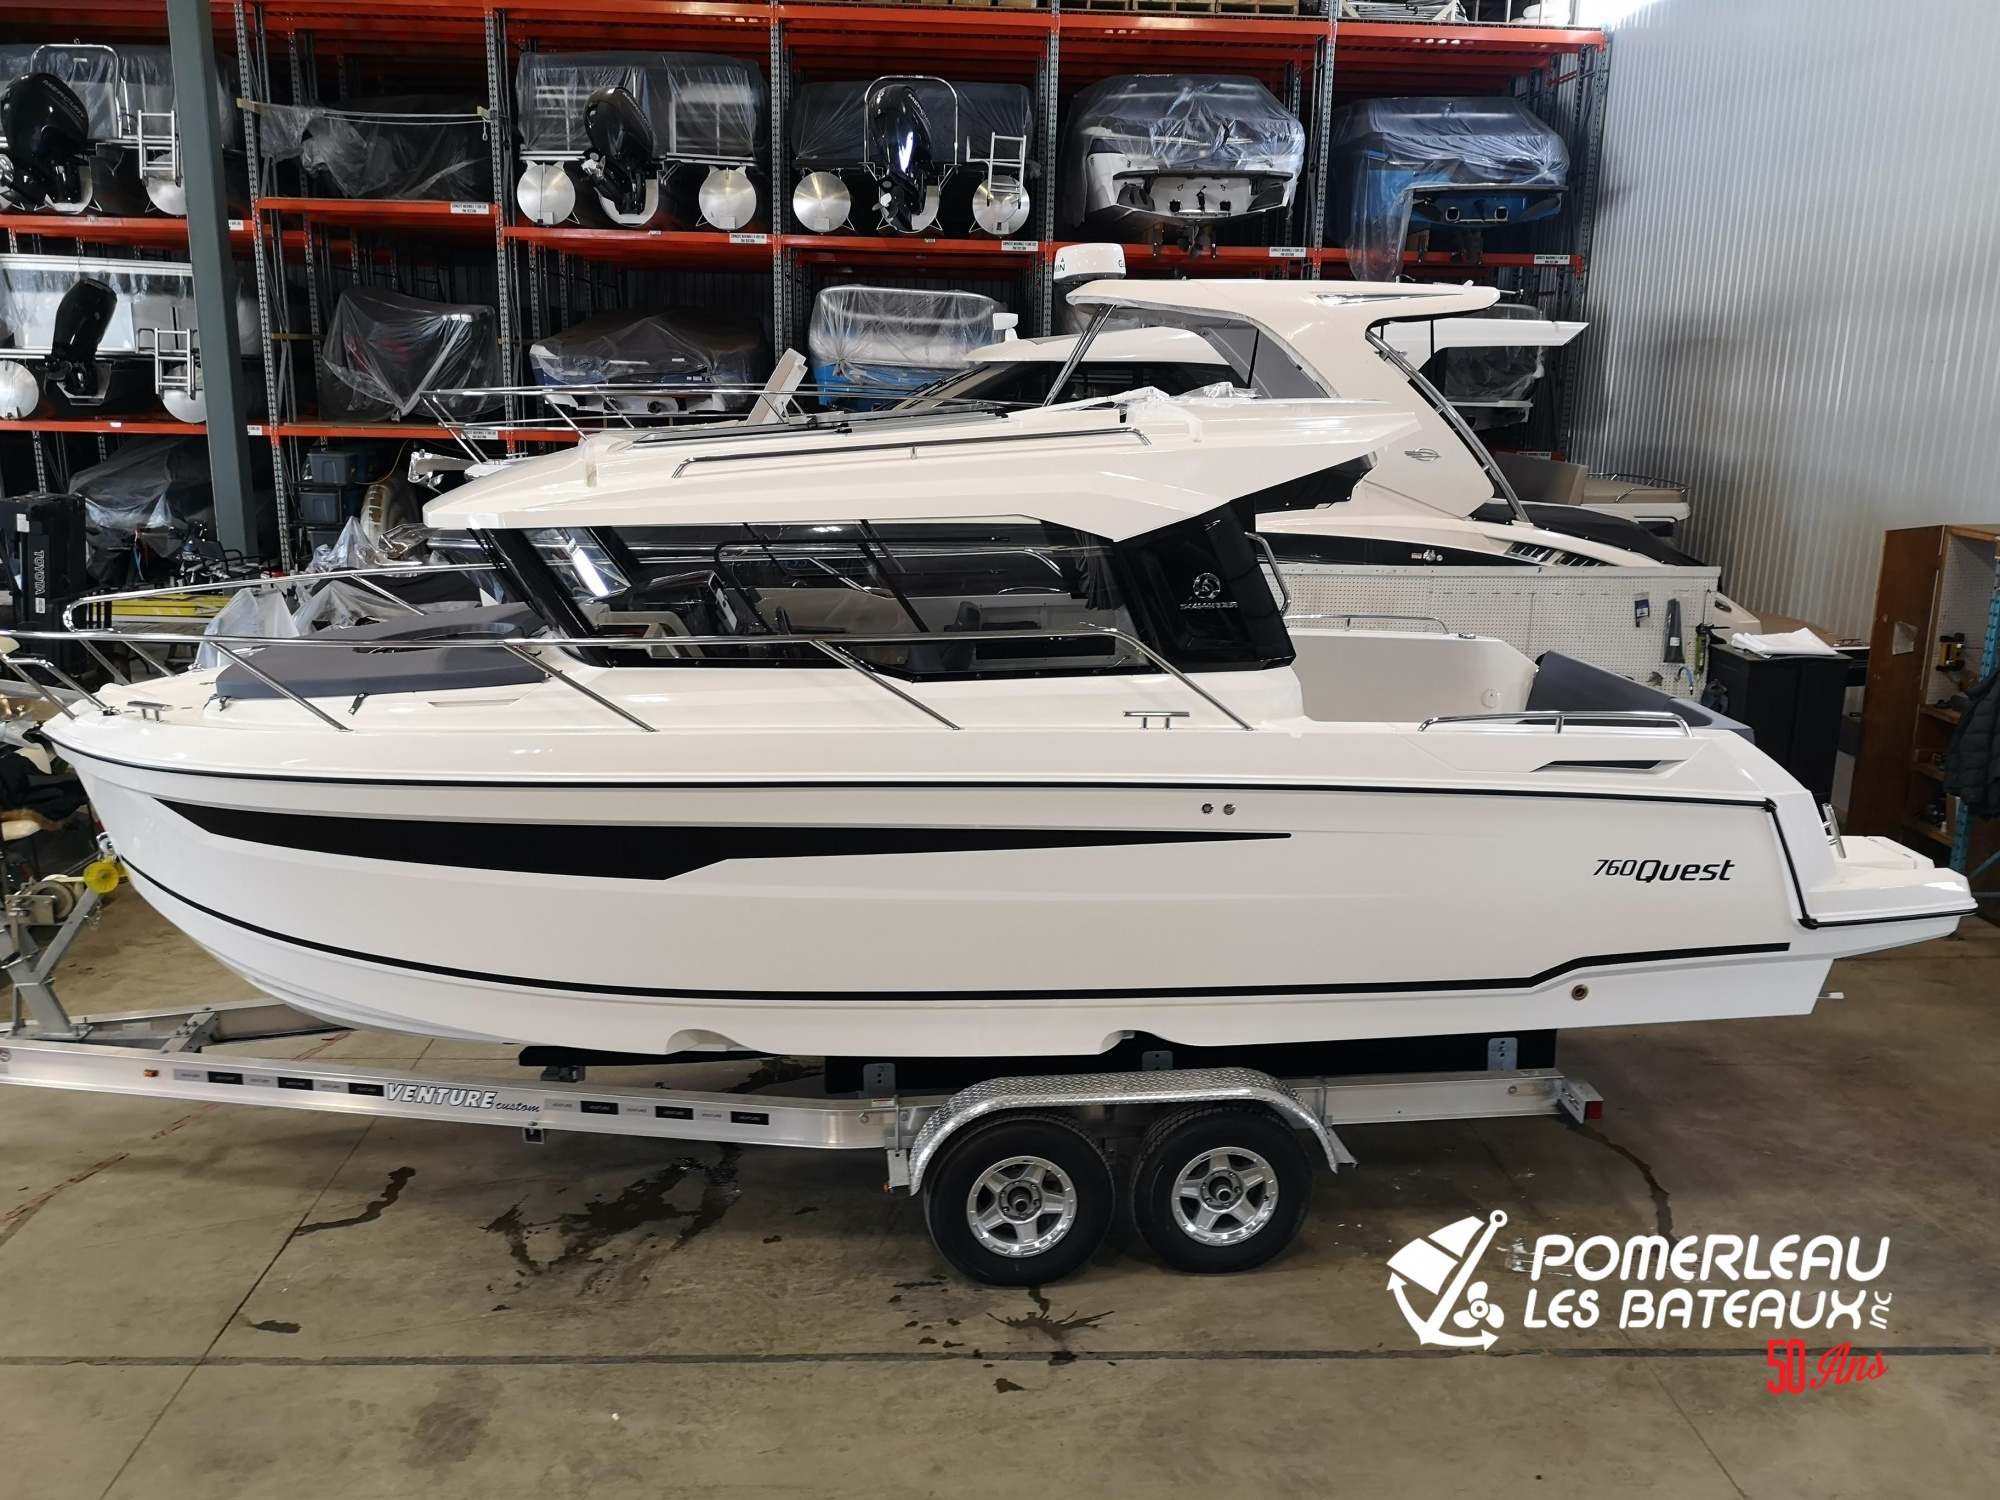 Parker Boats 760 Quest - IMG_20210125_091642